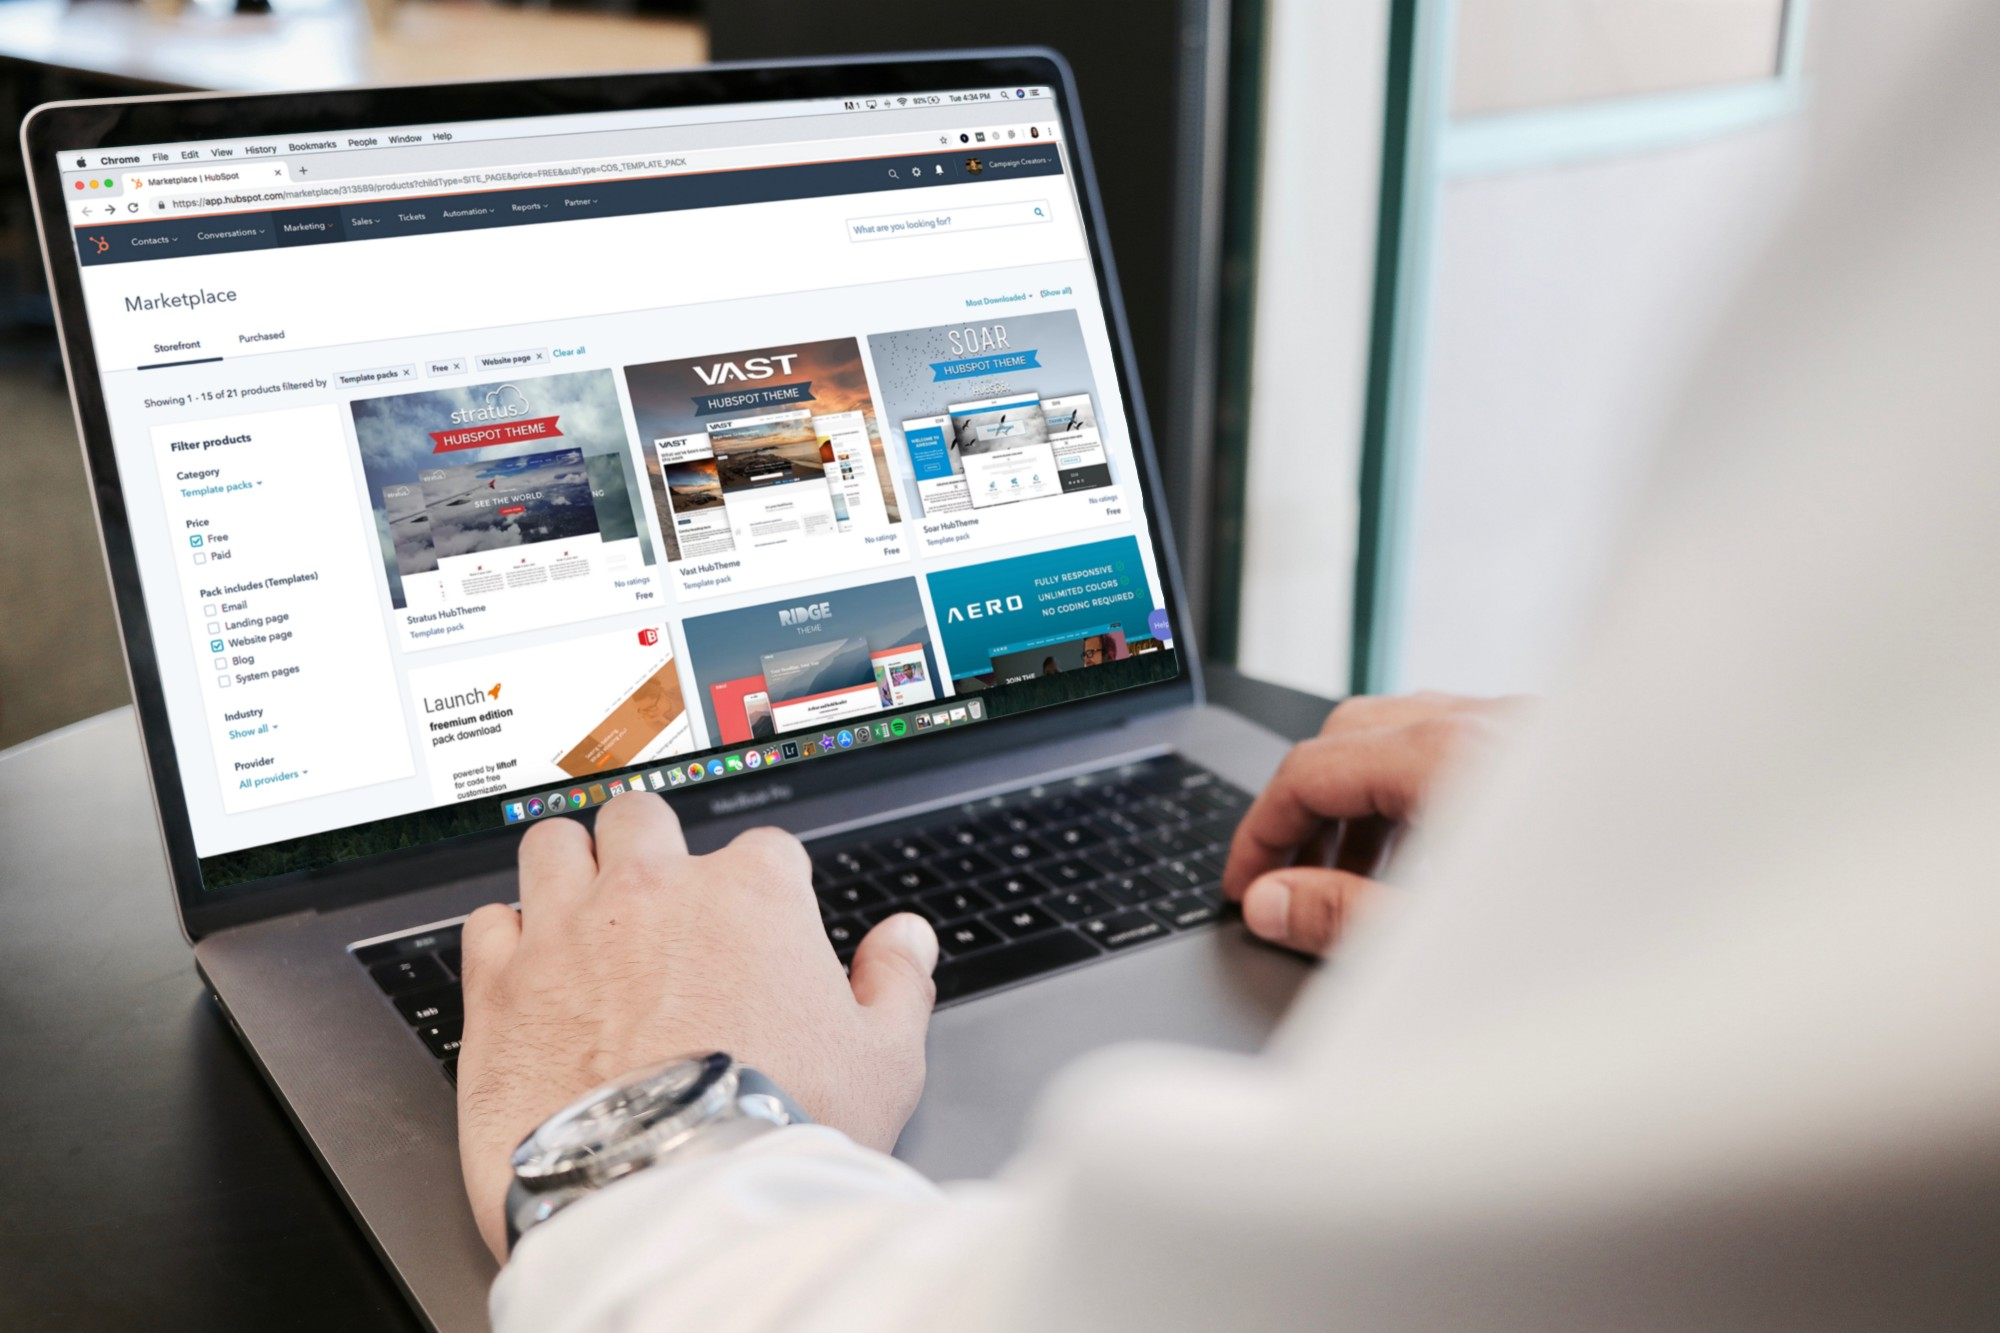 A man shops on an online marketplace for website themes